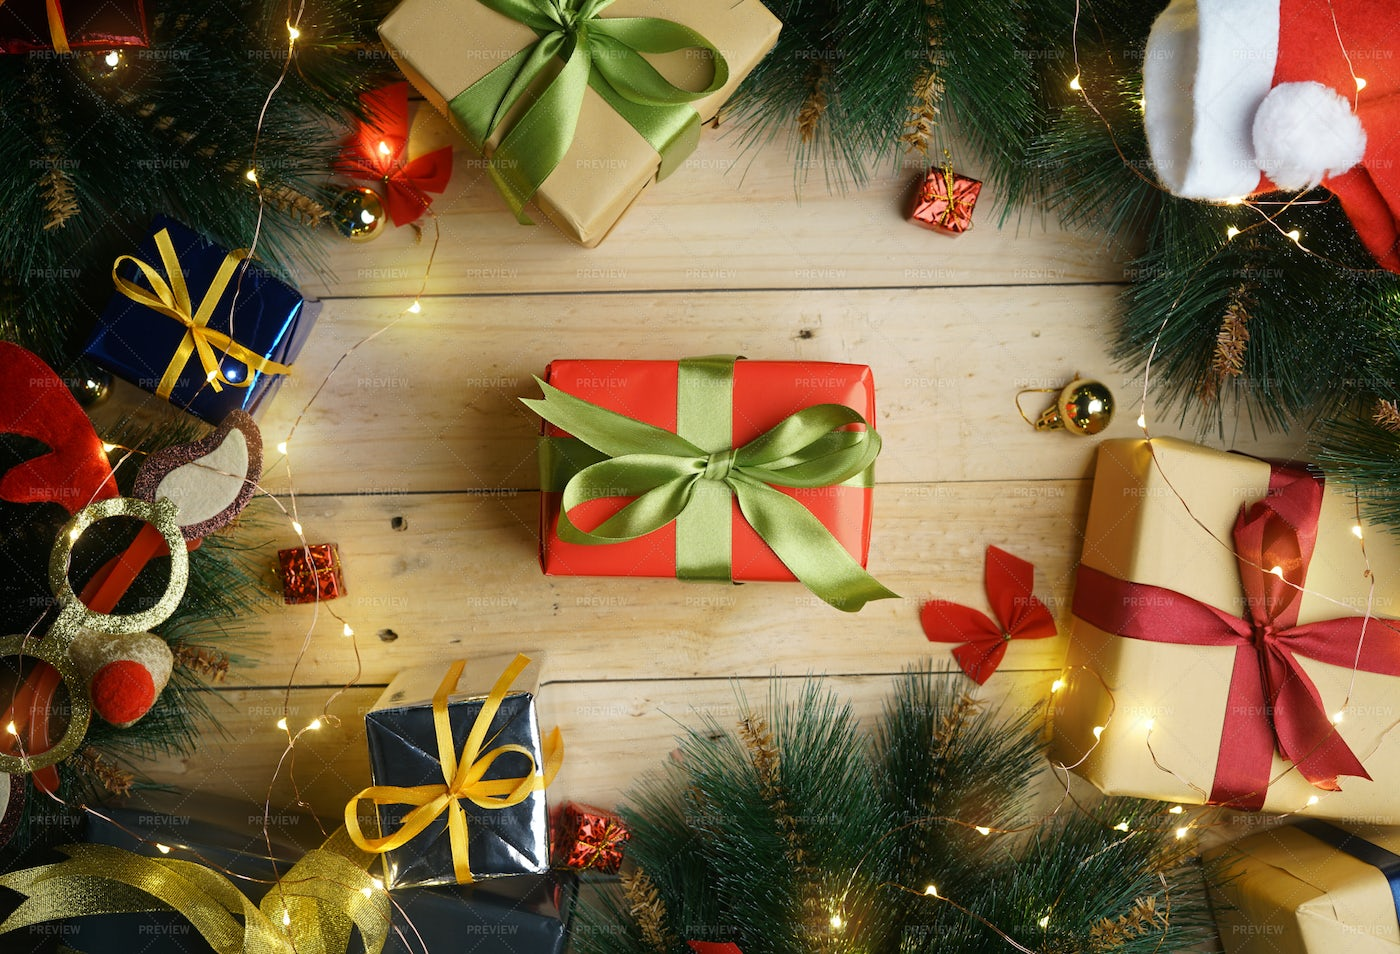 Top View Of Christmas Gifts: Stock Photos